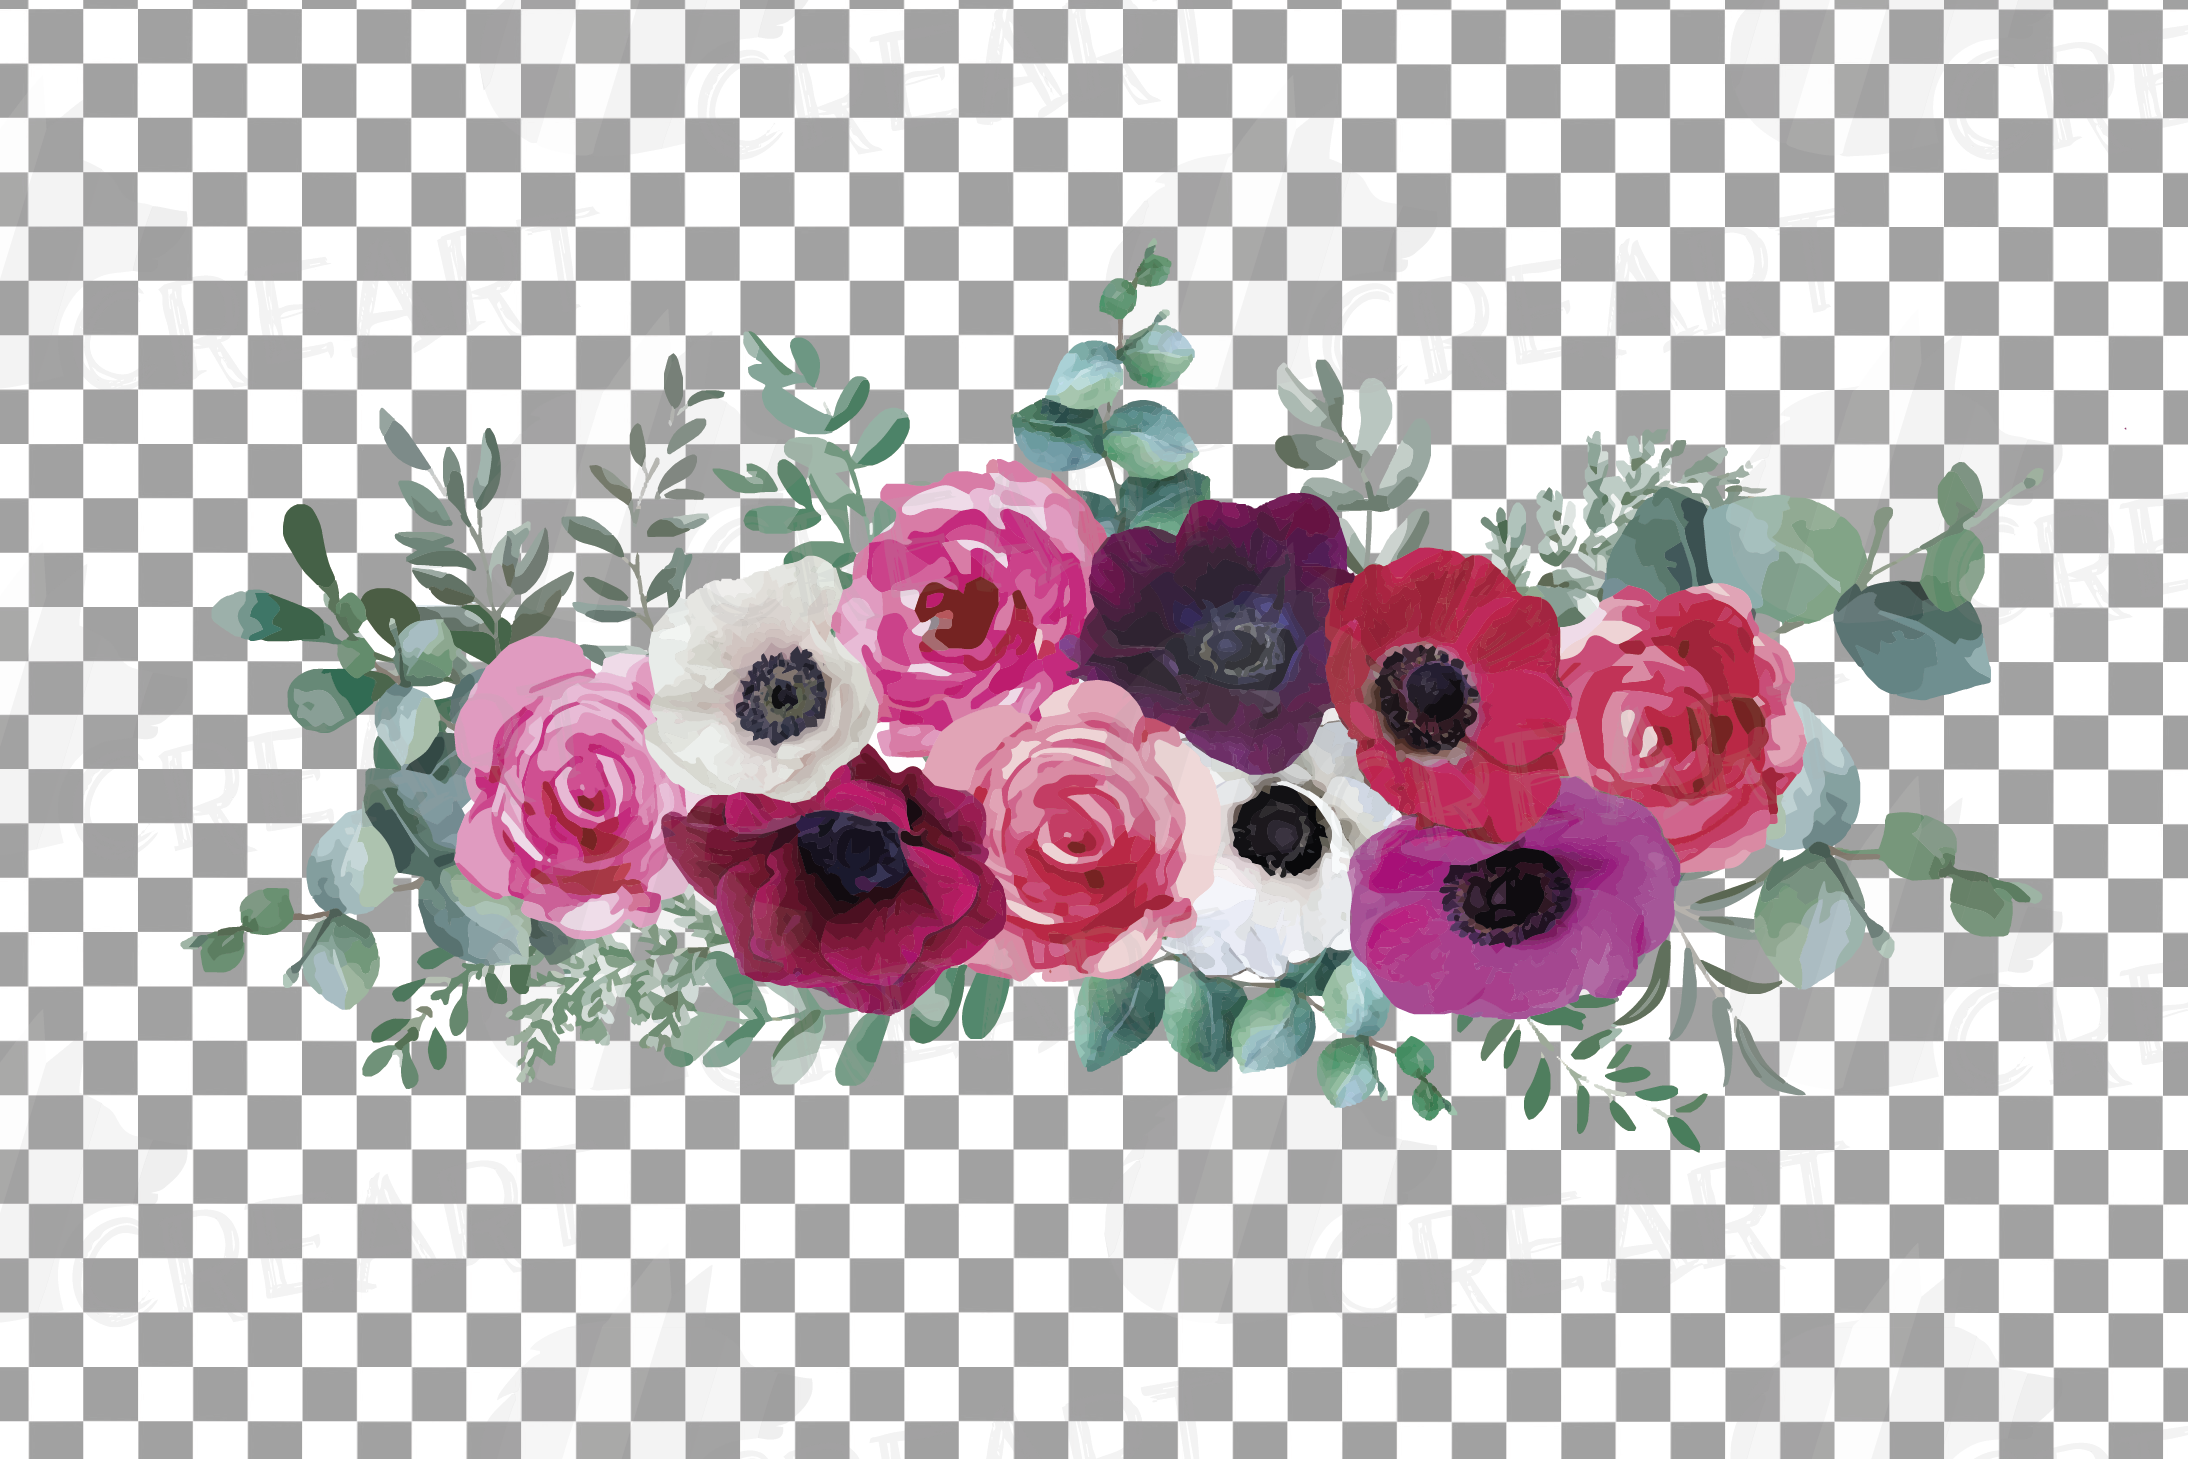 Watercolor elegant floral bouquets 2, rose, anemone decor example image 12